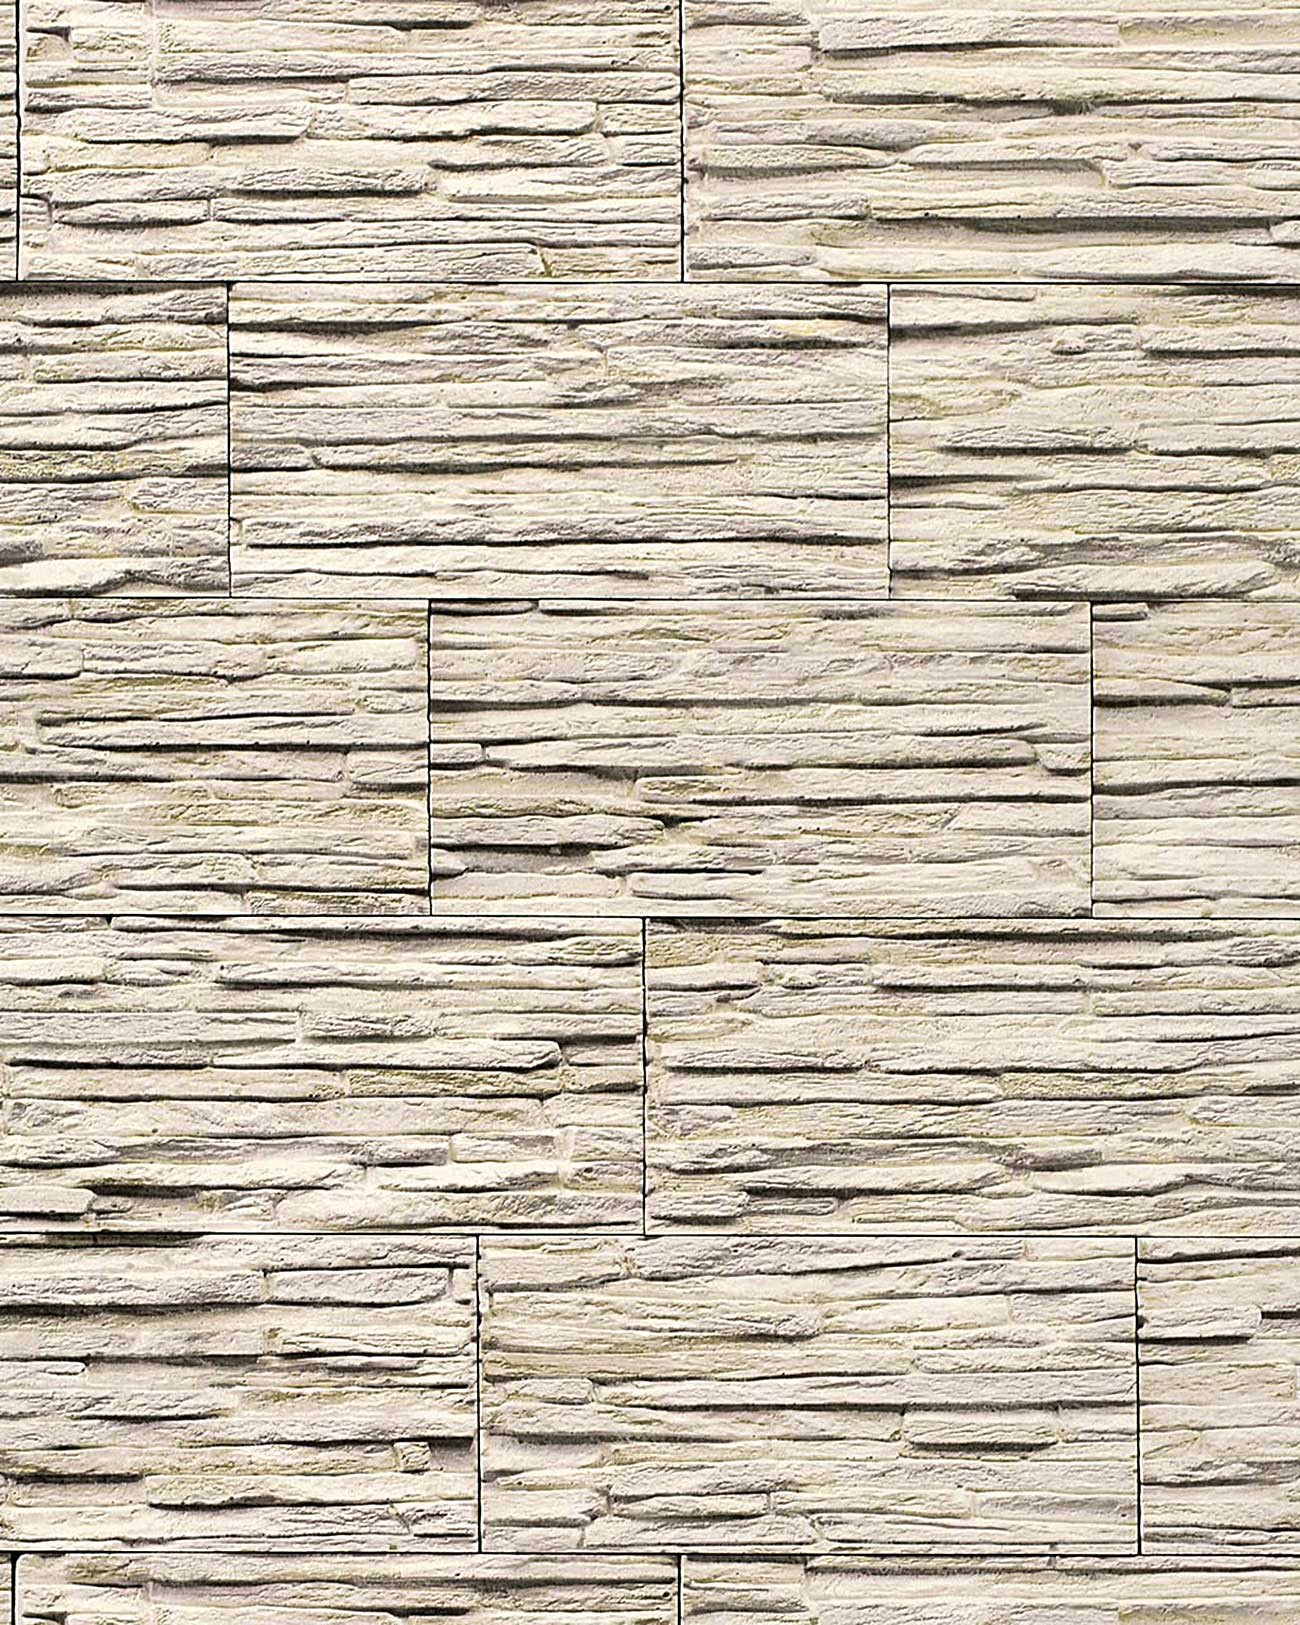 EDEM 1003 33 Vinyl Wallpaper Textured Stone Natural Brick Light Beige